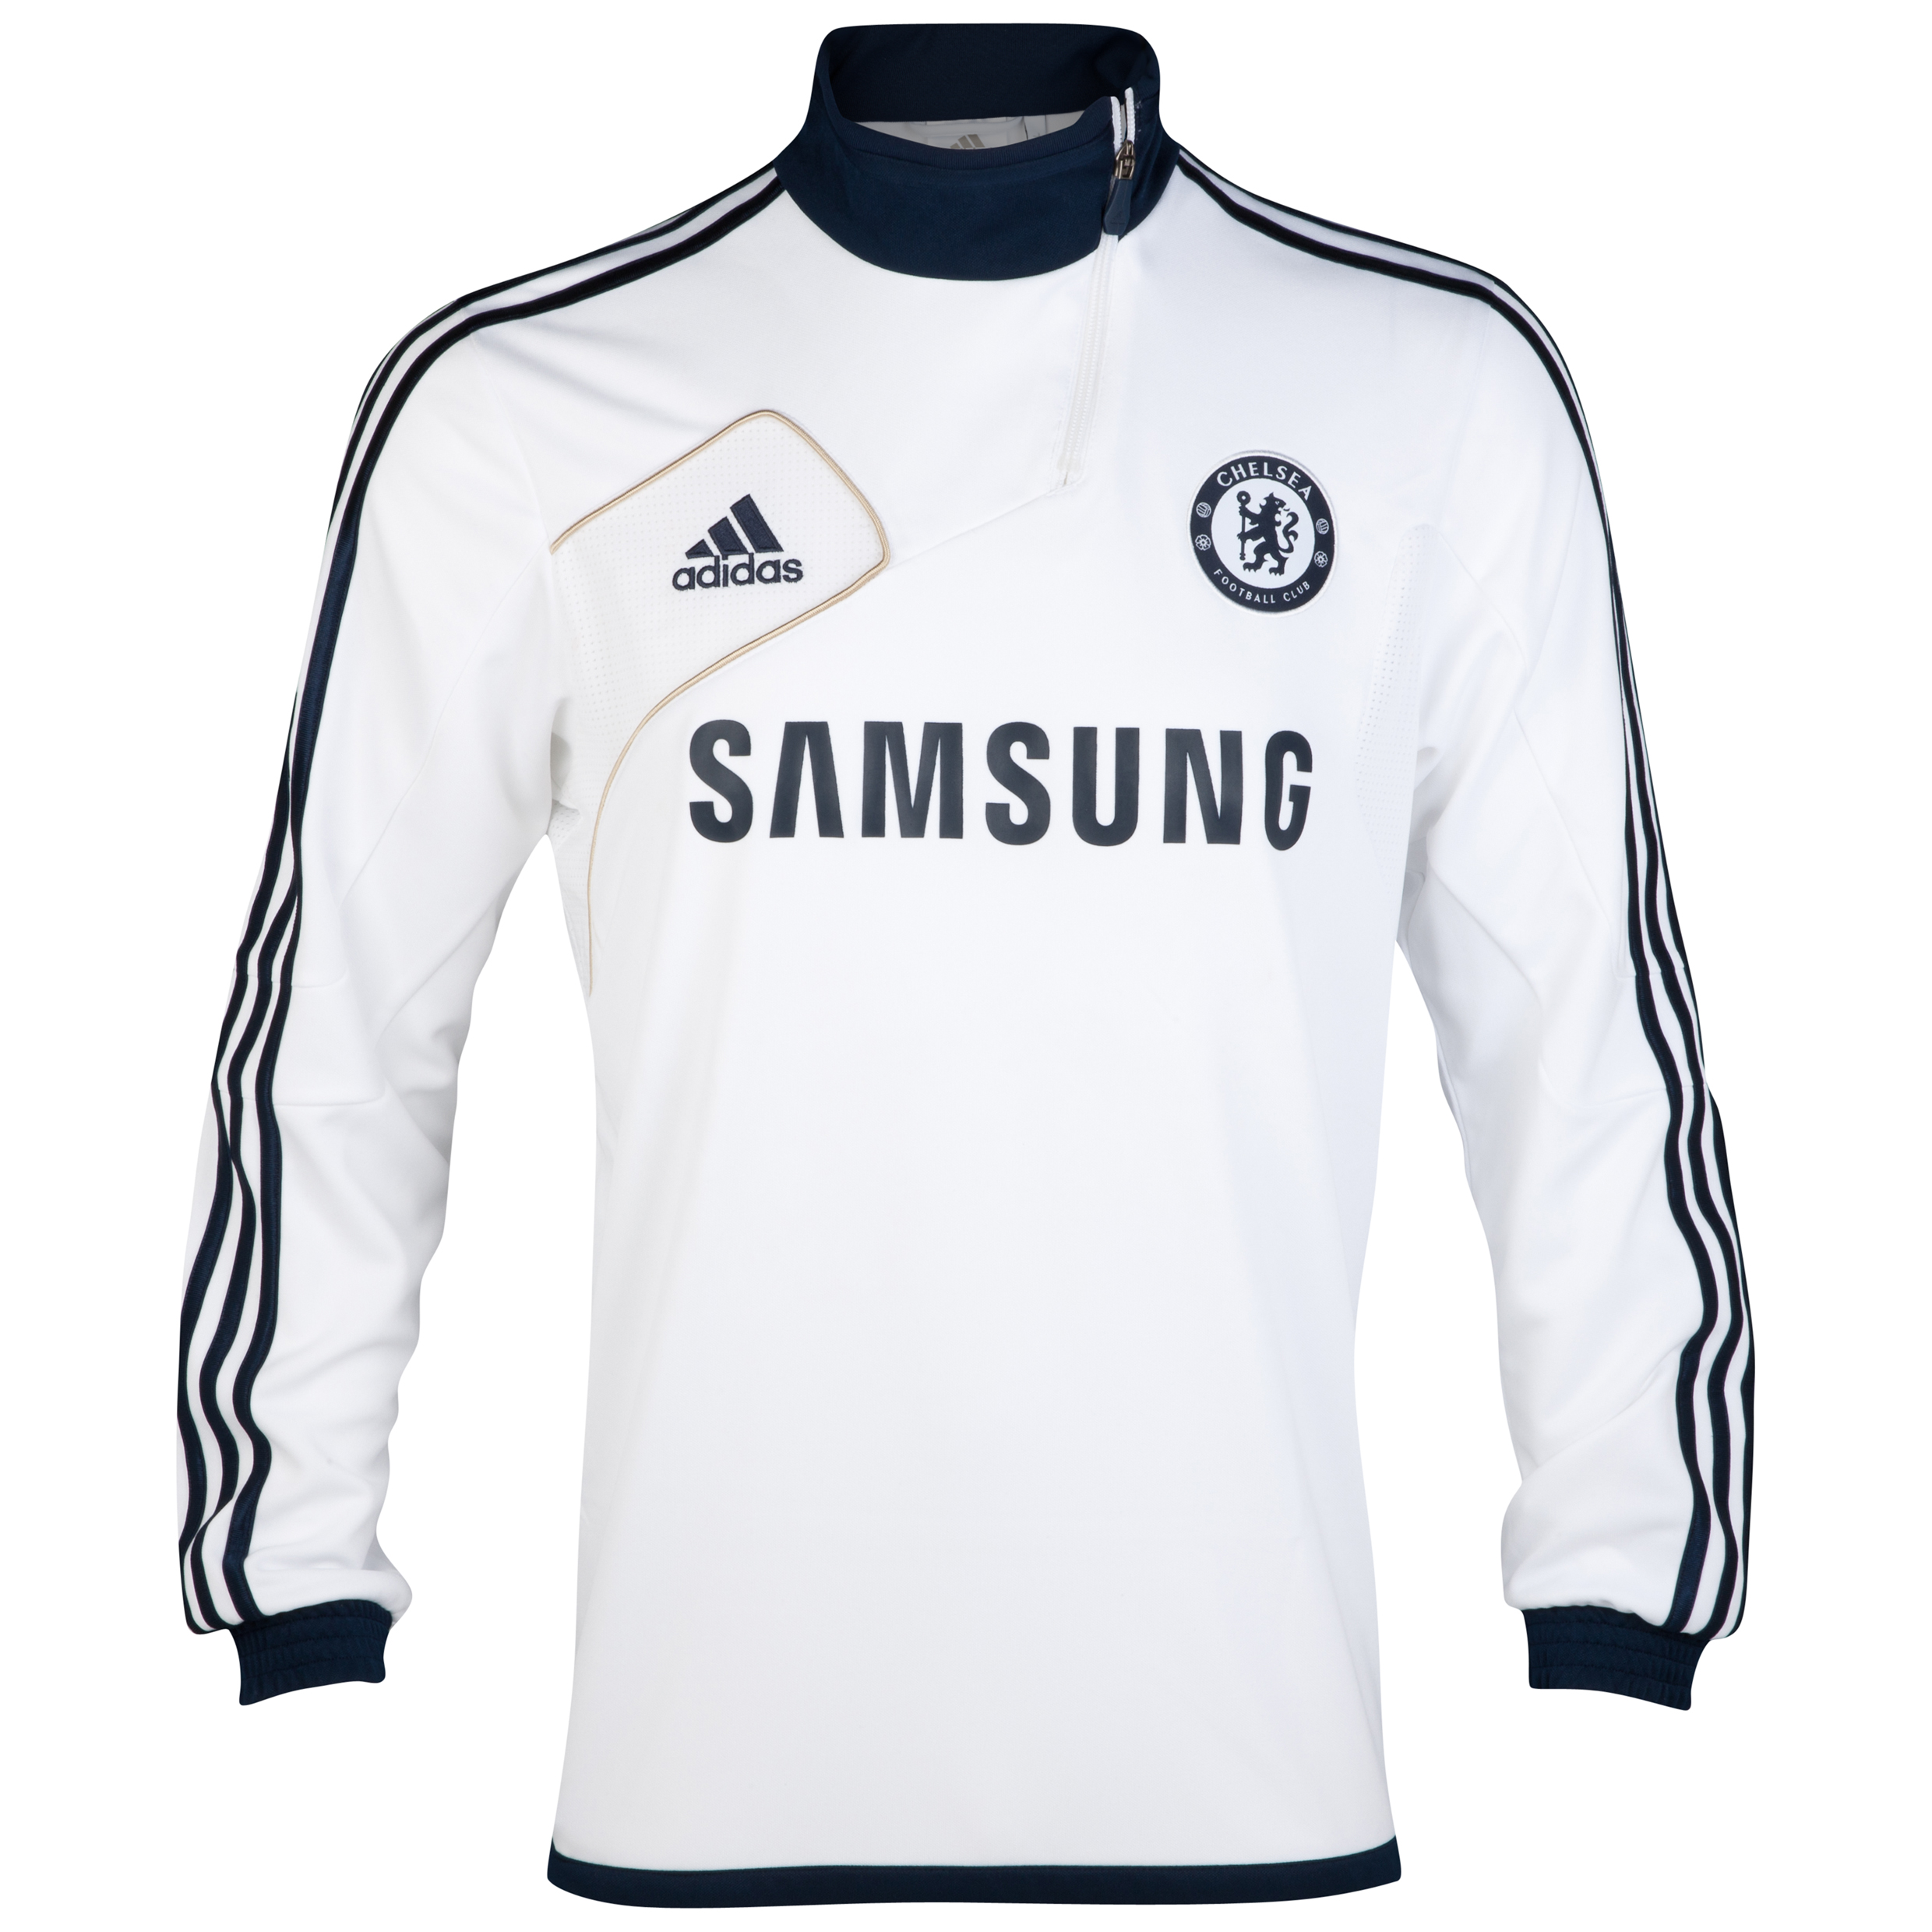 adidas Chelsea Training Top - White/Collegiate Navy/Light Football Gold